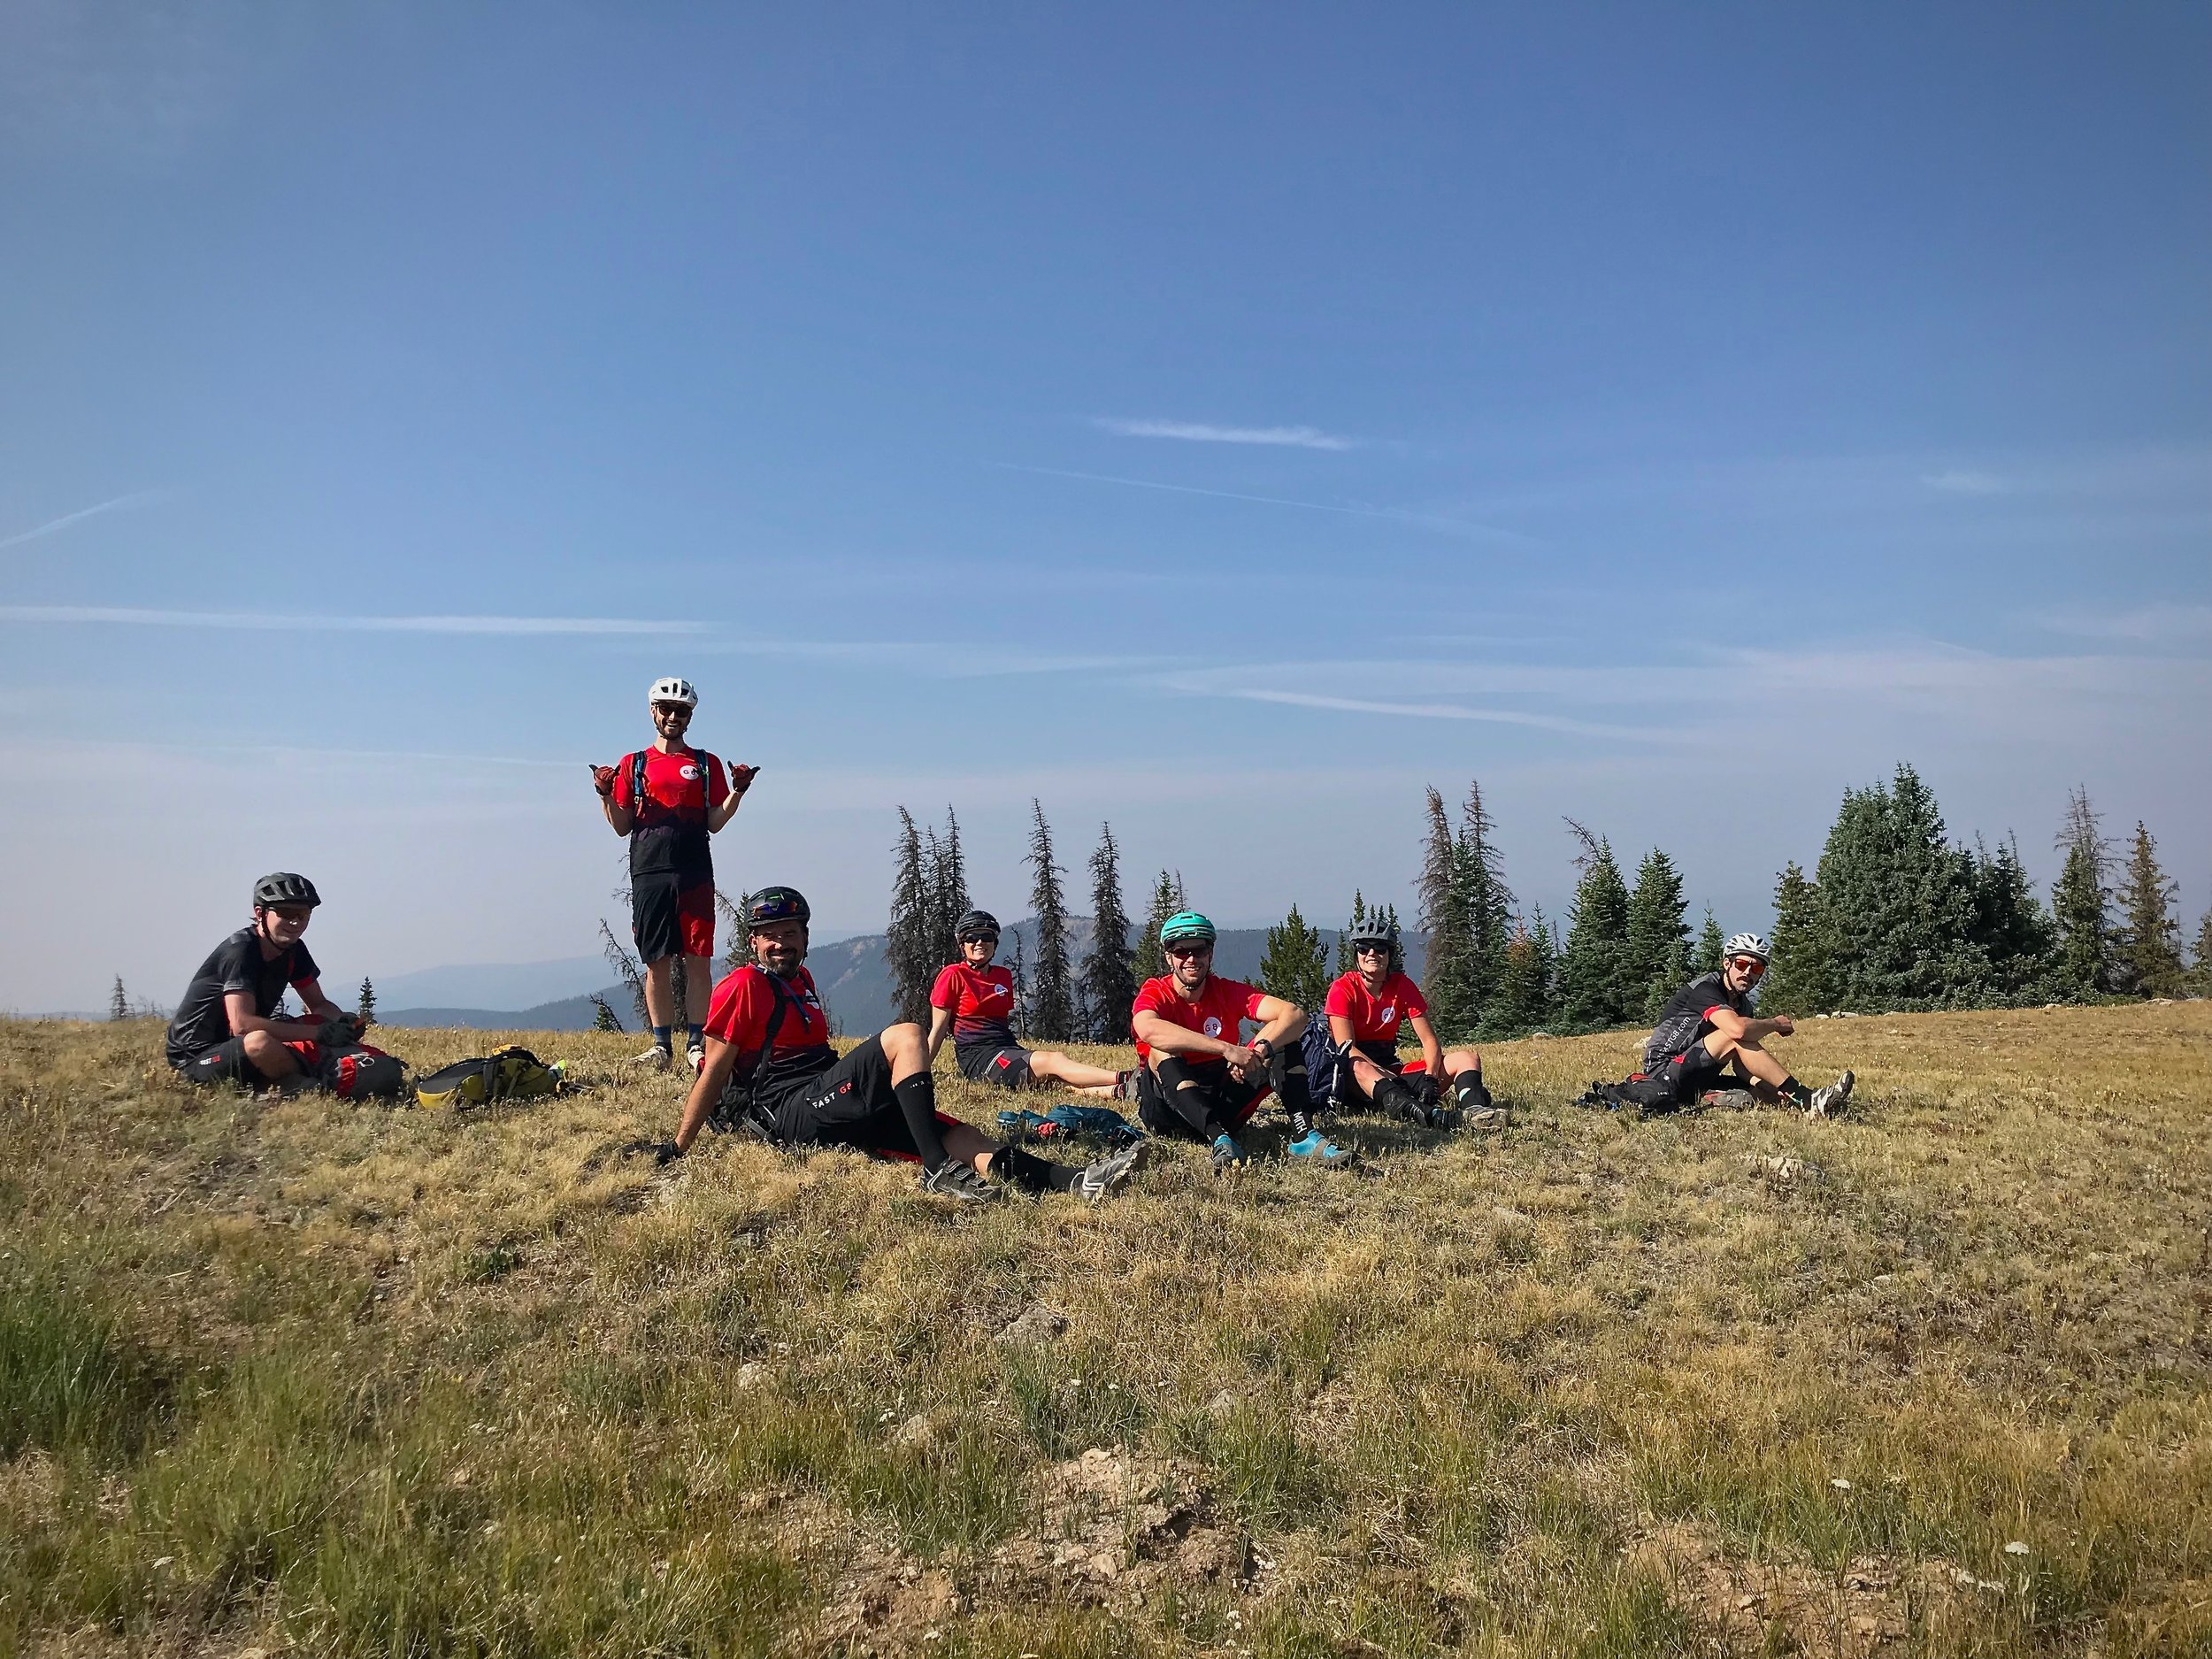 The team looking good in our matching kits and taking in the views on the Monarch Crest Trail.